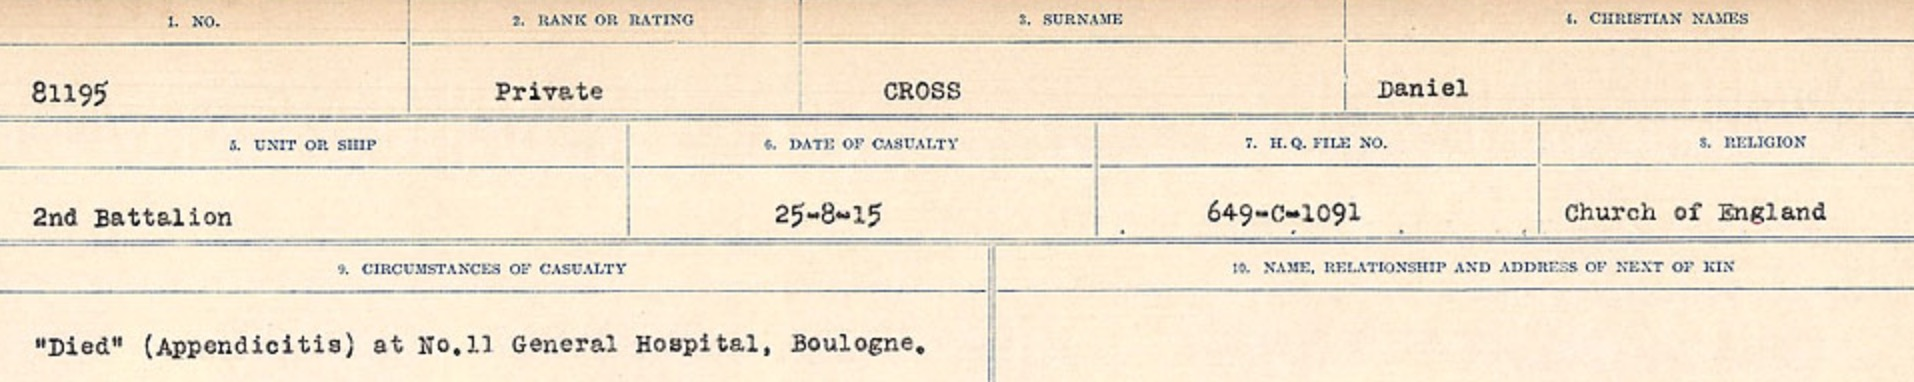 Circumstances of death registers– Source: Library and Archives Canada. CIRCUMSTANCES OF DEATH REGISTERS, FIRST WORLD WAR Surnames: CRABB TO CROSSLAND Microform Sequence 24; Volume Number 31829_B016733. Reference RG150, 1992-93/314, 168. Page 749 of 788.